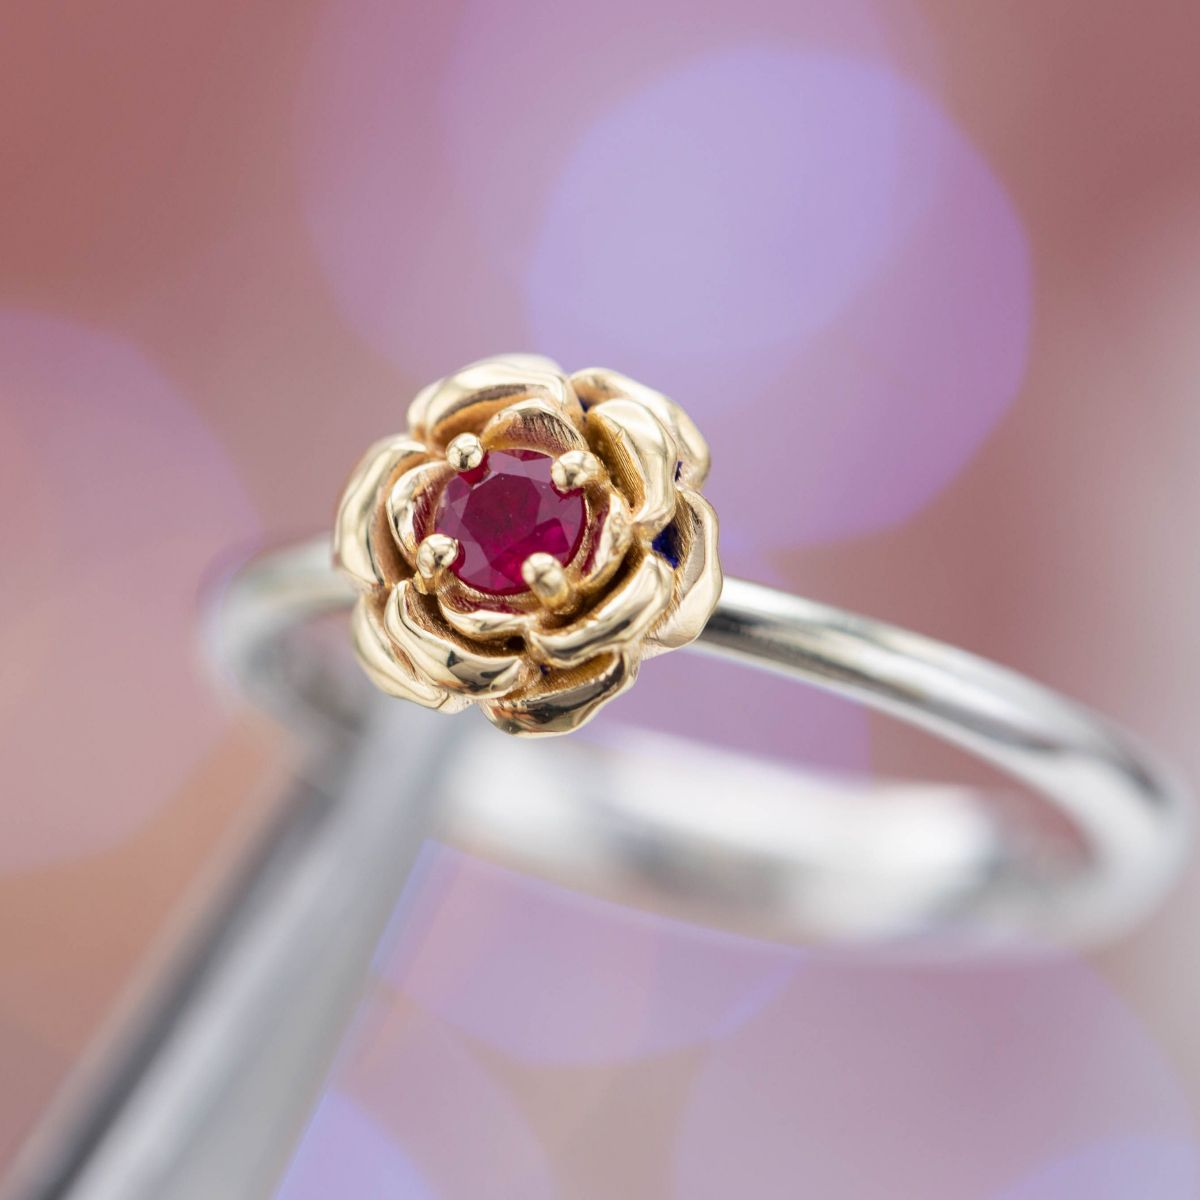 a32da00019bb This ring sets a rose gold rose on a white gold band